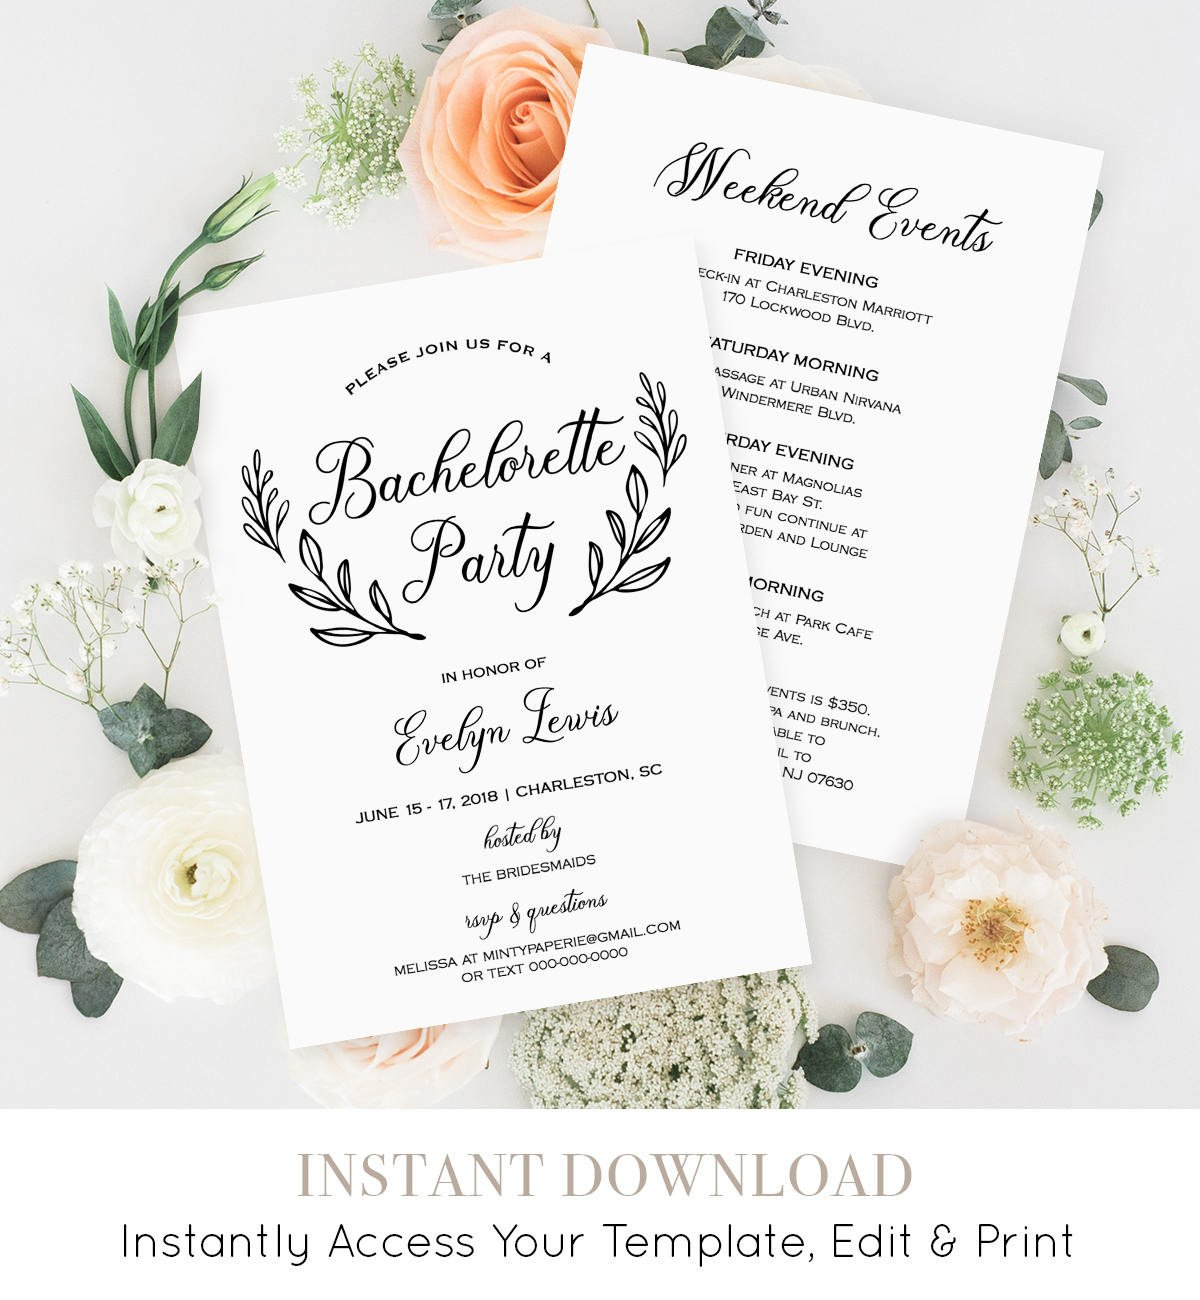 Bachelorette Party Itinerary Template Bachelorette Party Invitation Template Printable